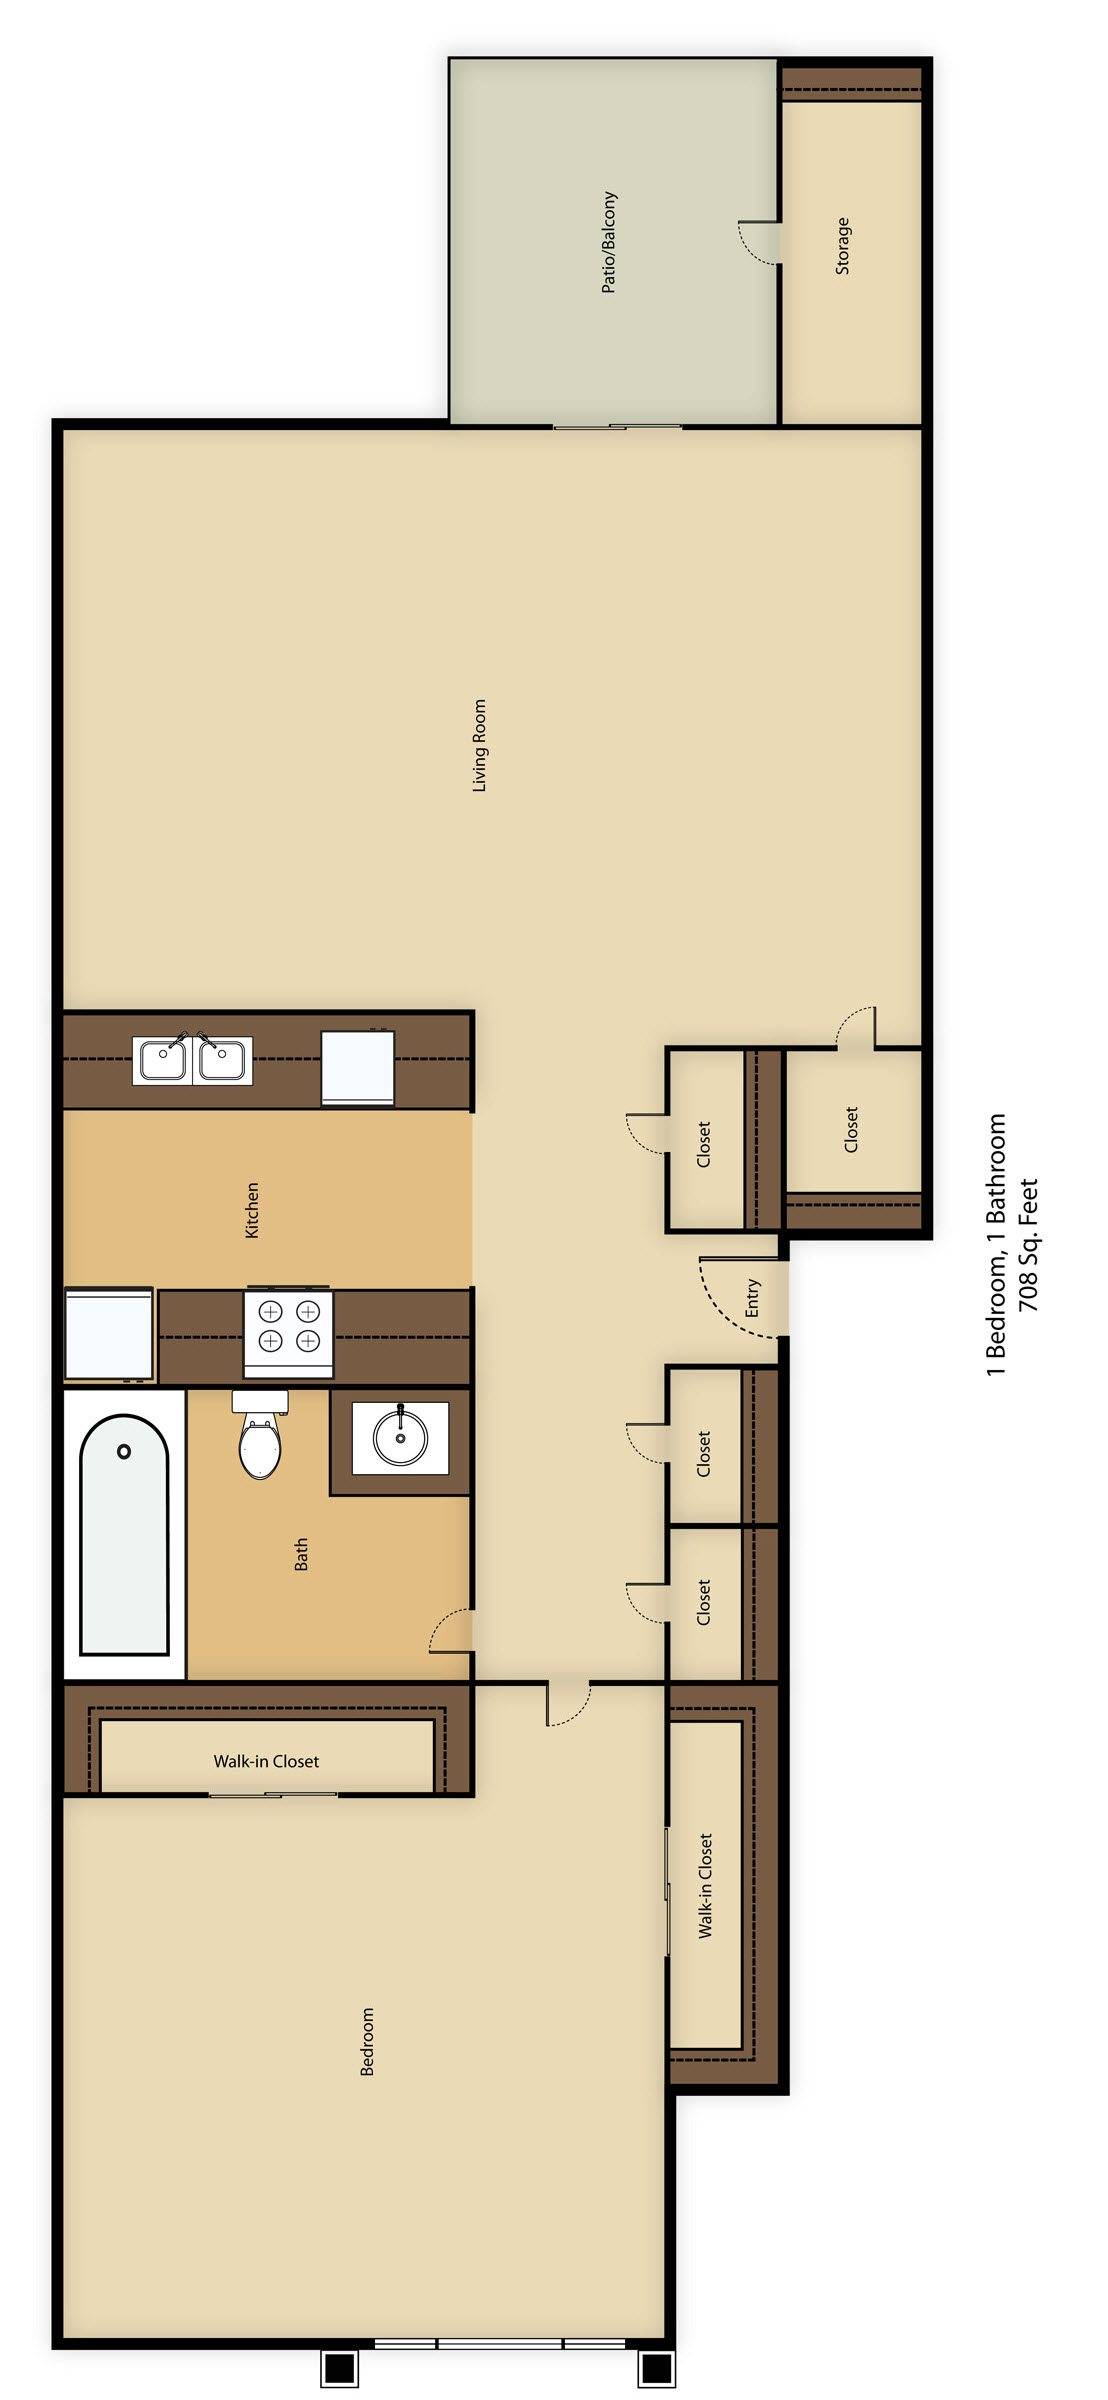 Floor Plans Of Sienna Pointe Apartments In Moreno Valley Ca